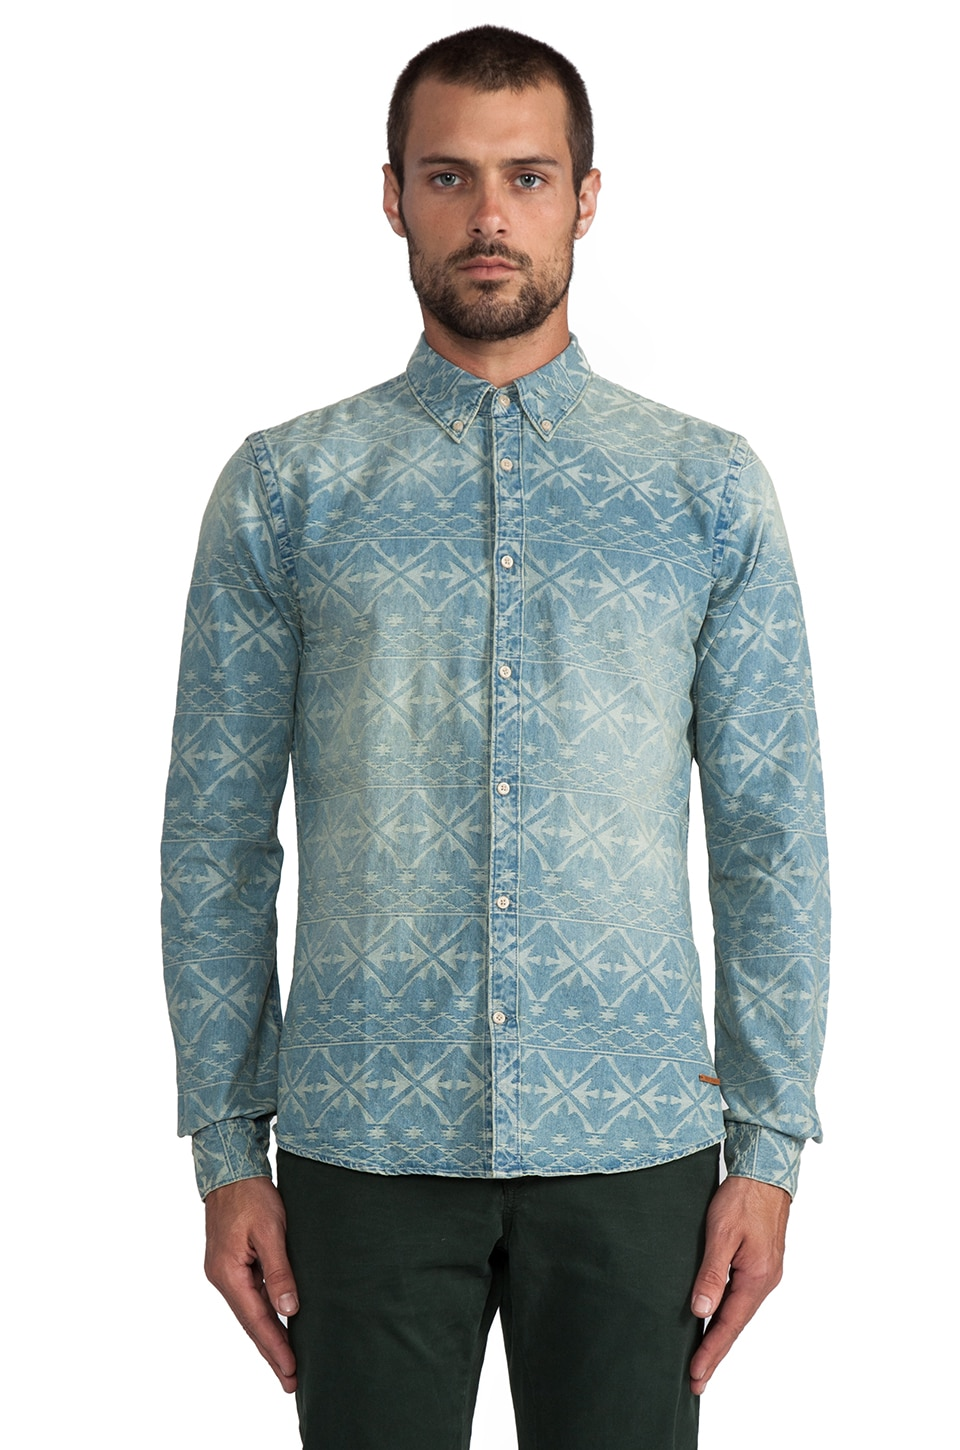 Scotch & Soda Fancy Ikat Shirt in Denim